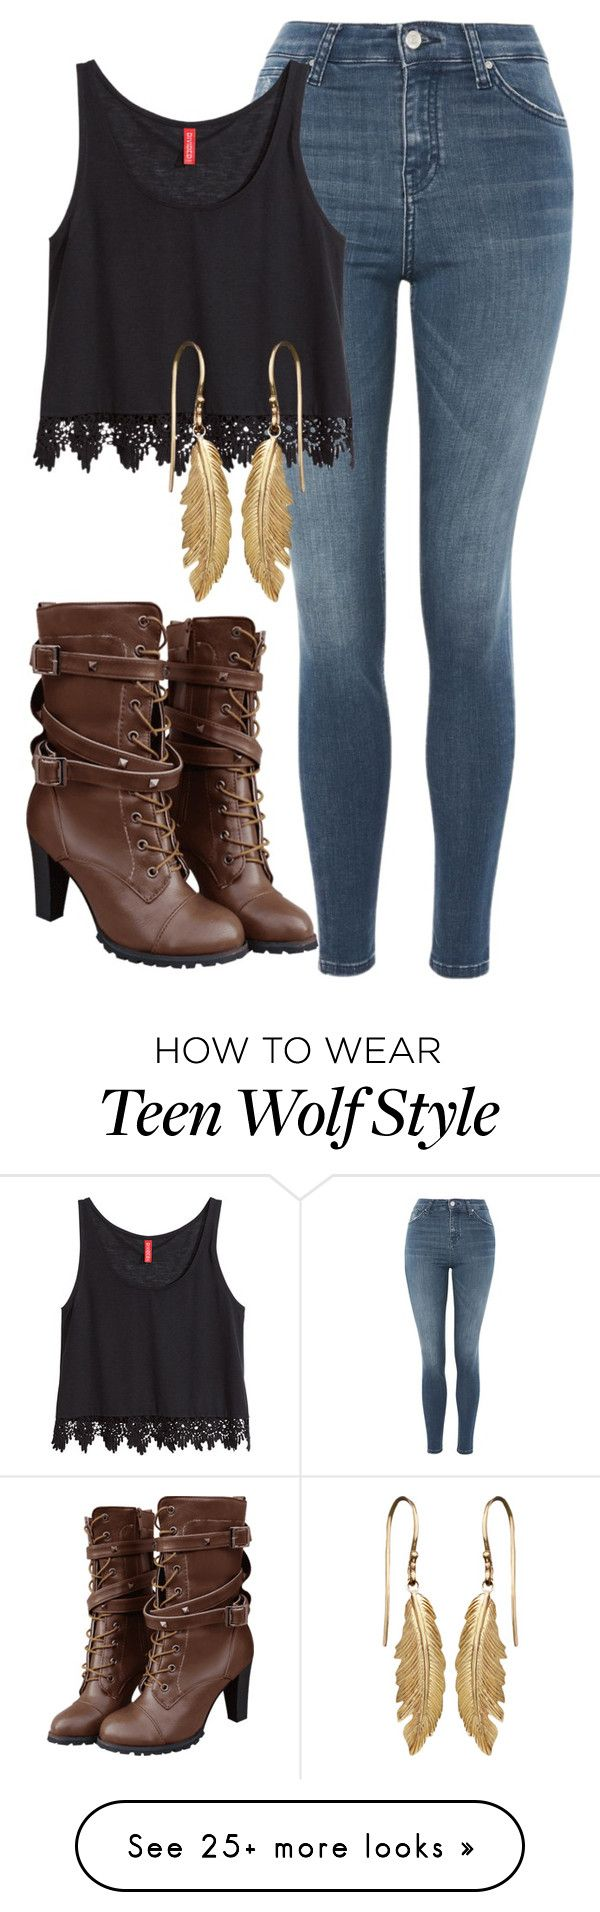 """Hayden Inspired Outfit - Teen Wolf"" by clawsandclothes on Polyvore featuring Topshop and H&M"